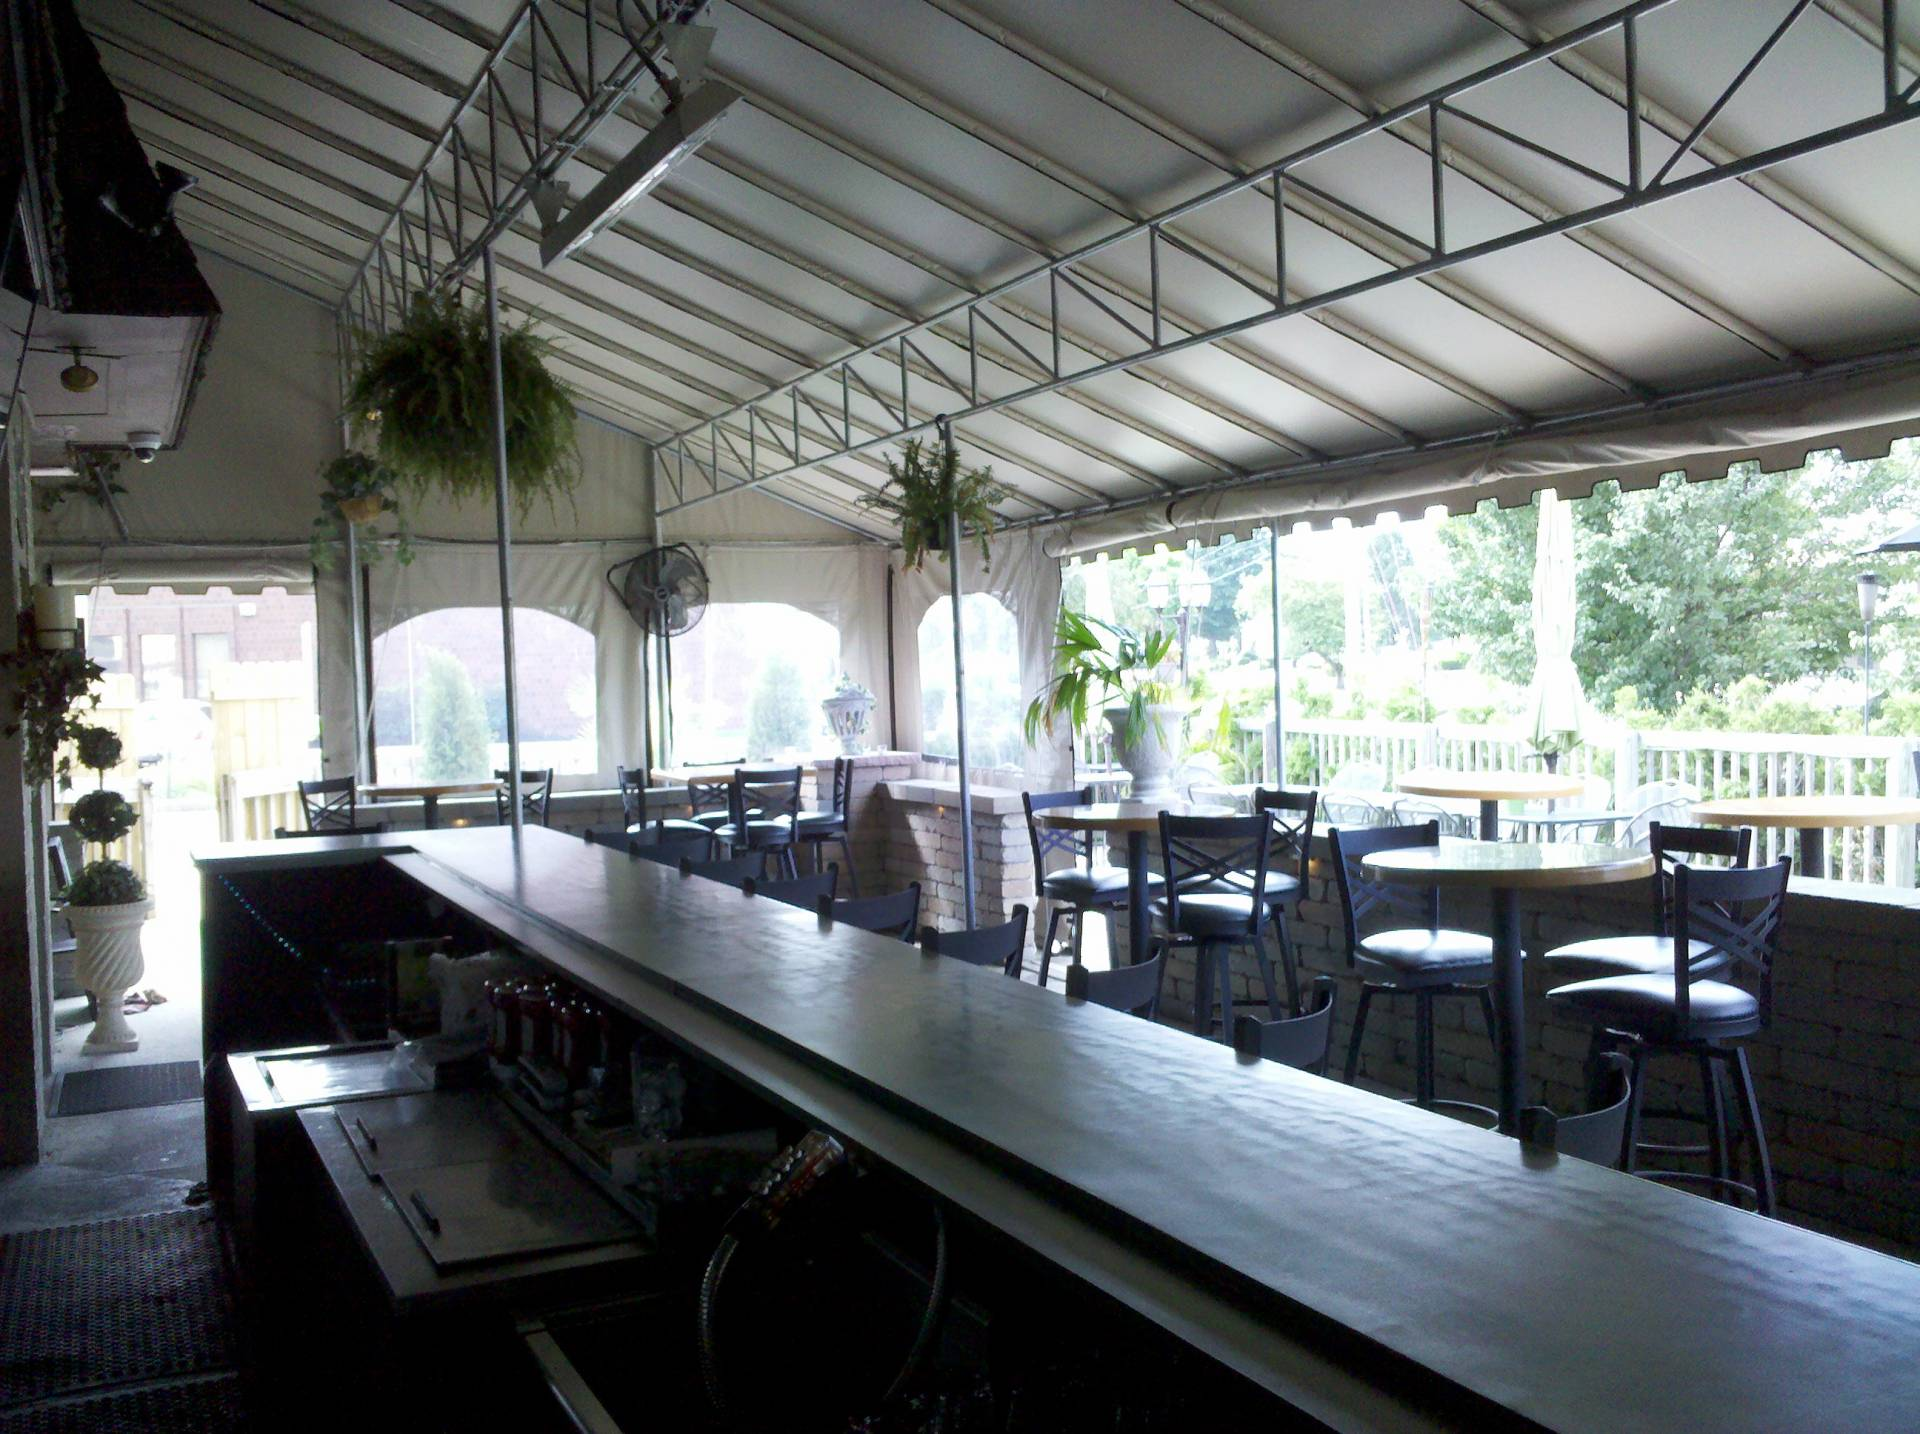 Dining Canopy Over Bar Area In York Kreider S Canvas Service Inc